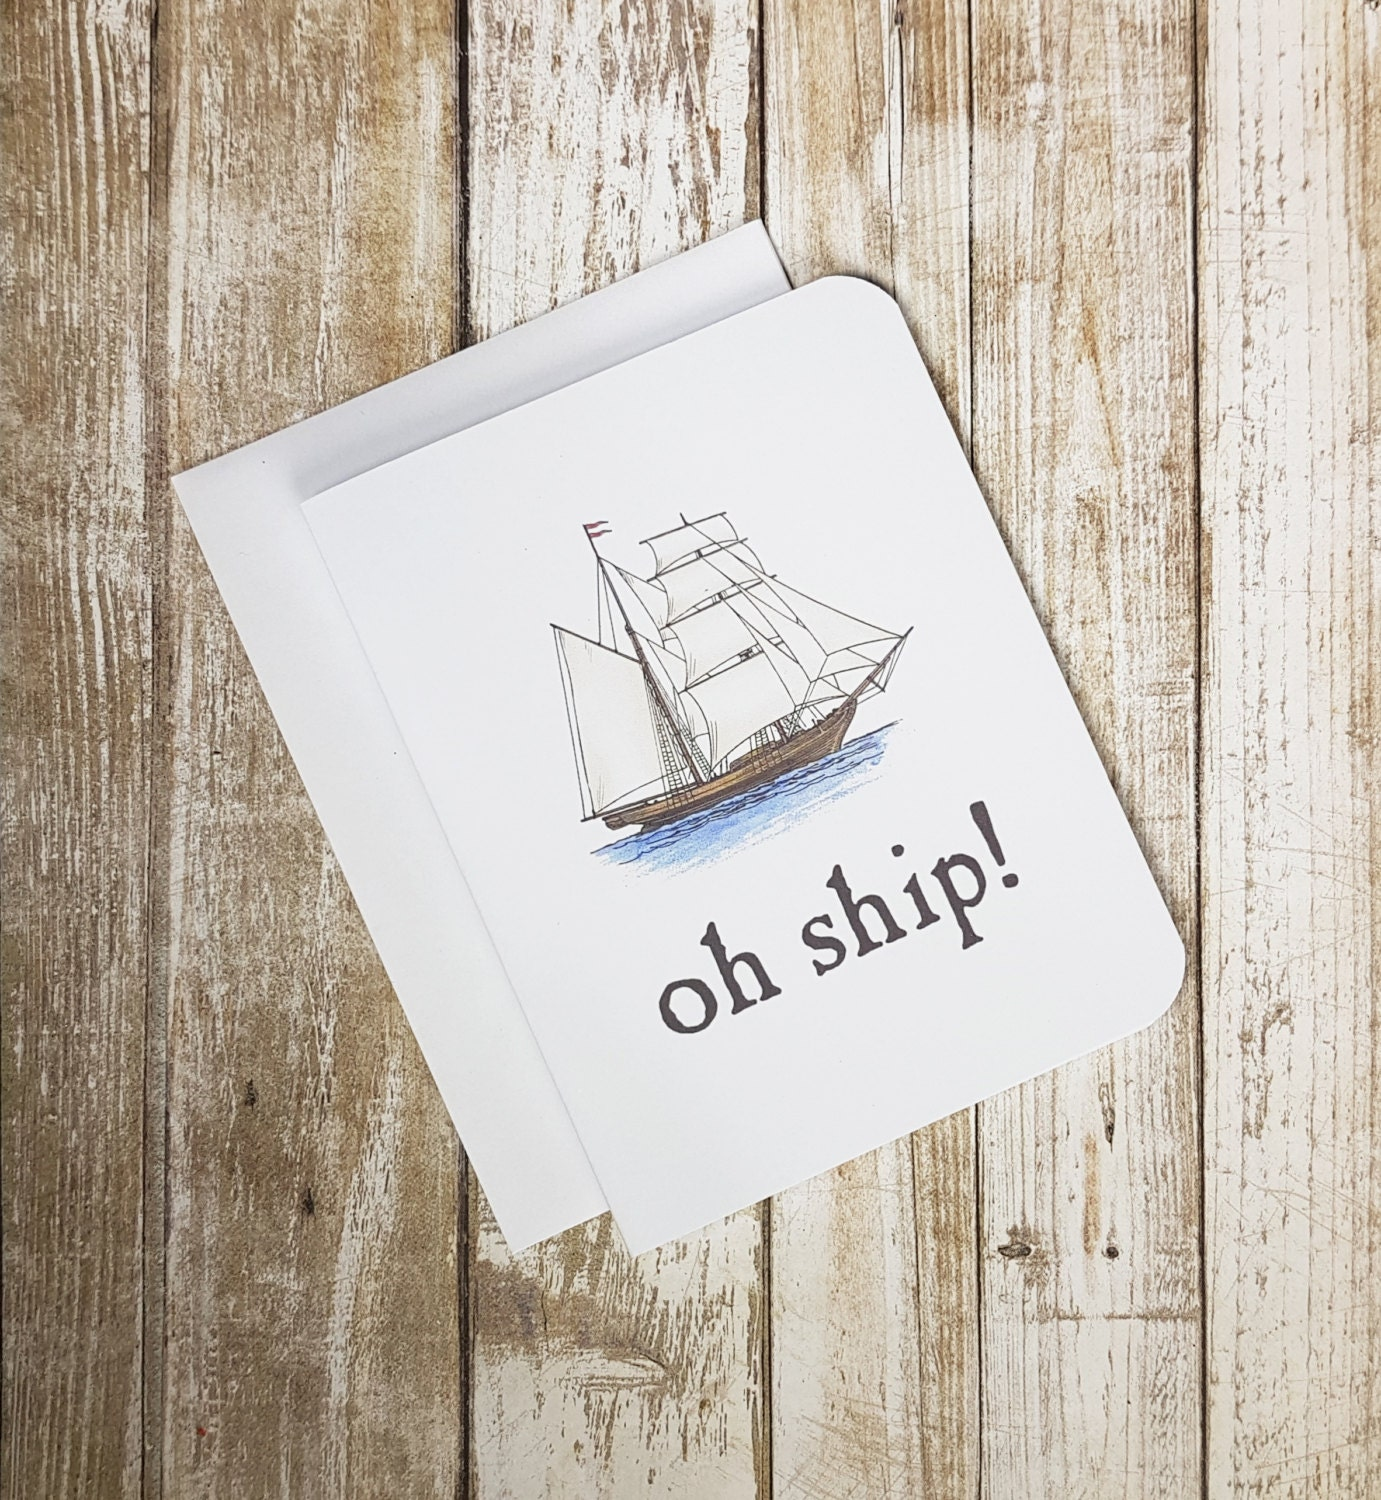 Apology card oh ship greeting card sorry card greeting card apology card oh ship greeting card sorry card greeting card ship play on words funny card nautical card kristyandbryce Gallery